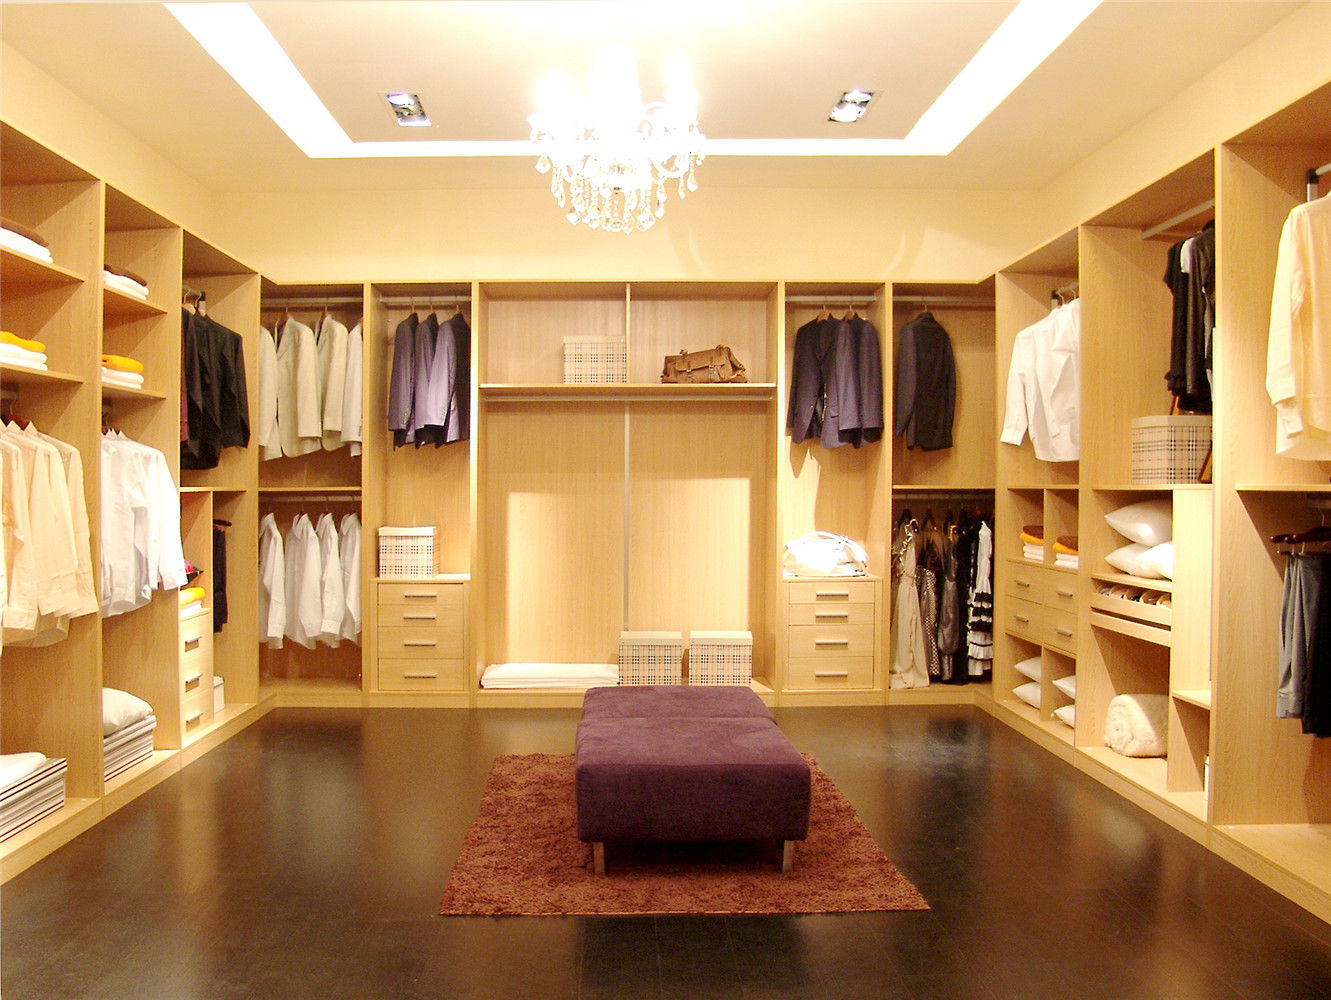 Bedroom Closet Walk-in Melamine Wardrobe